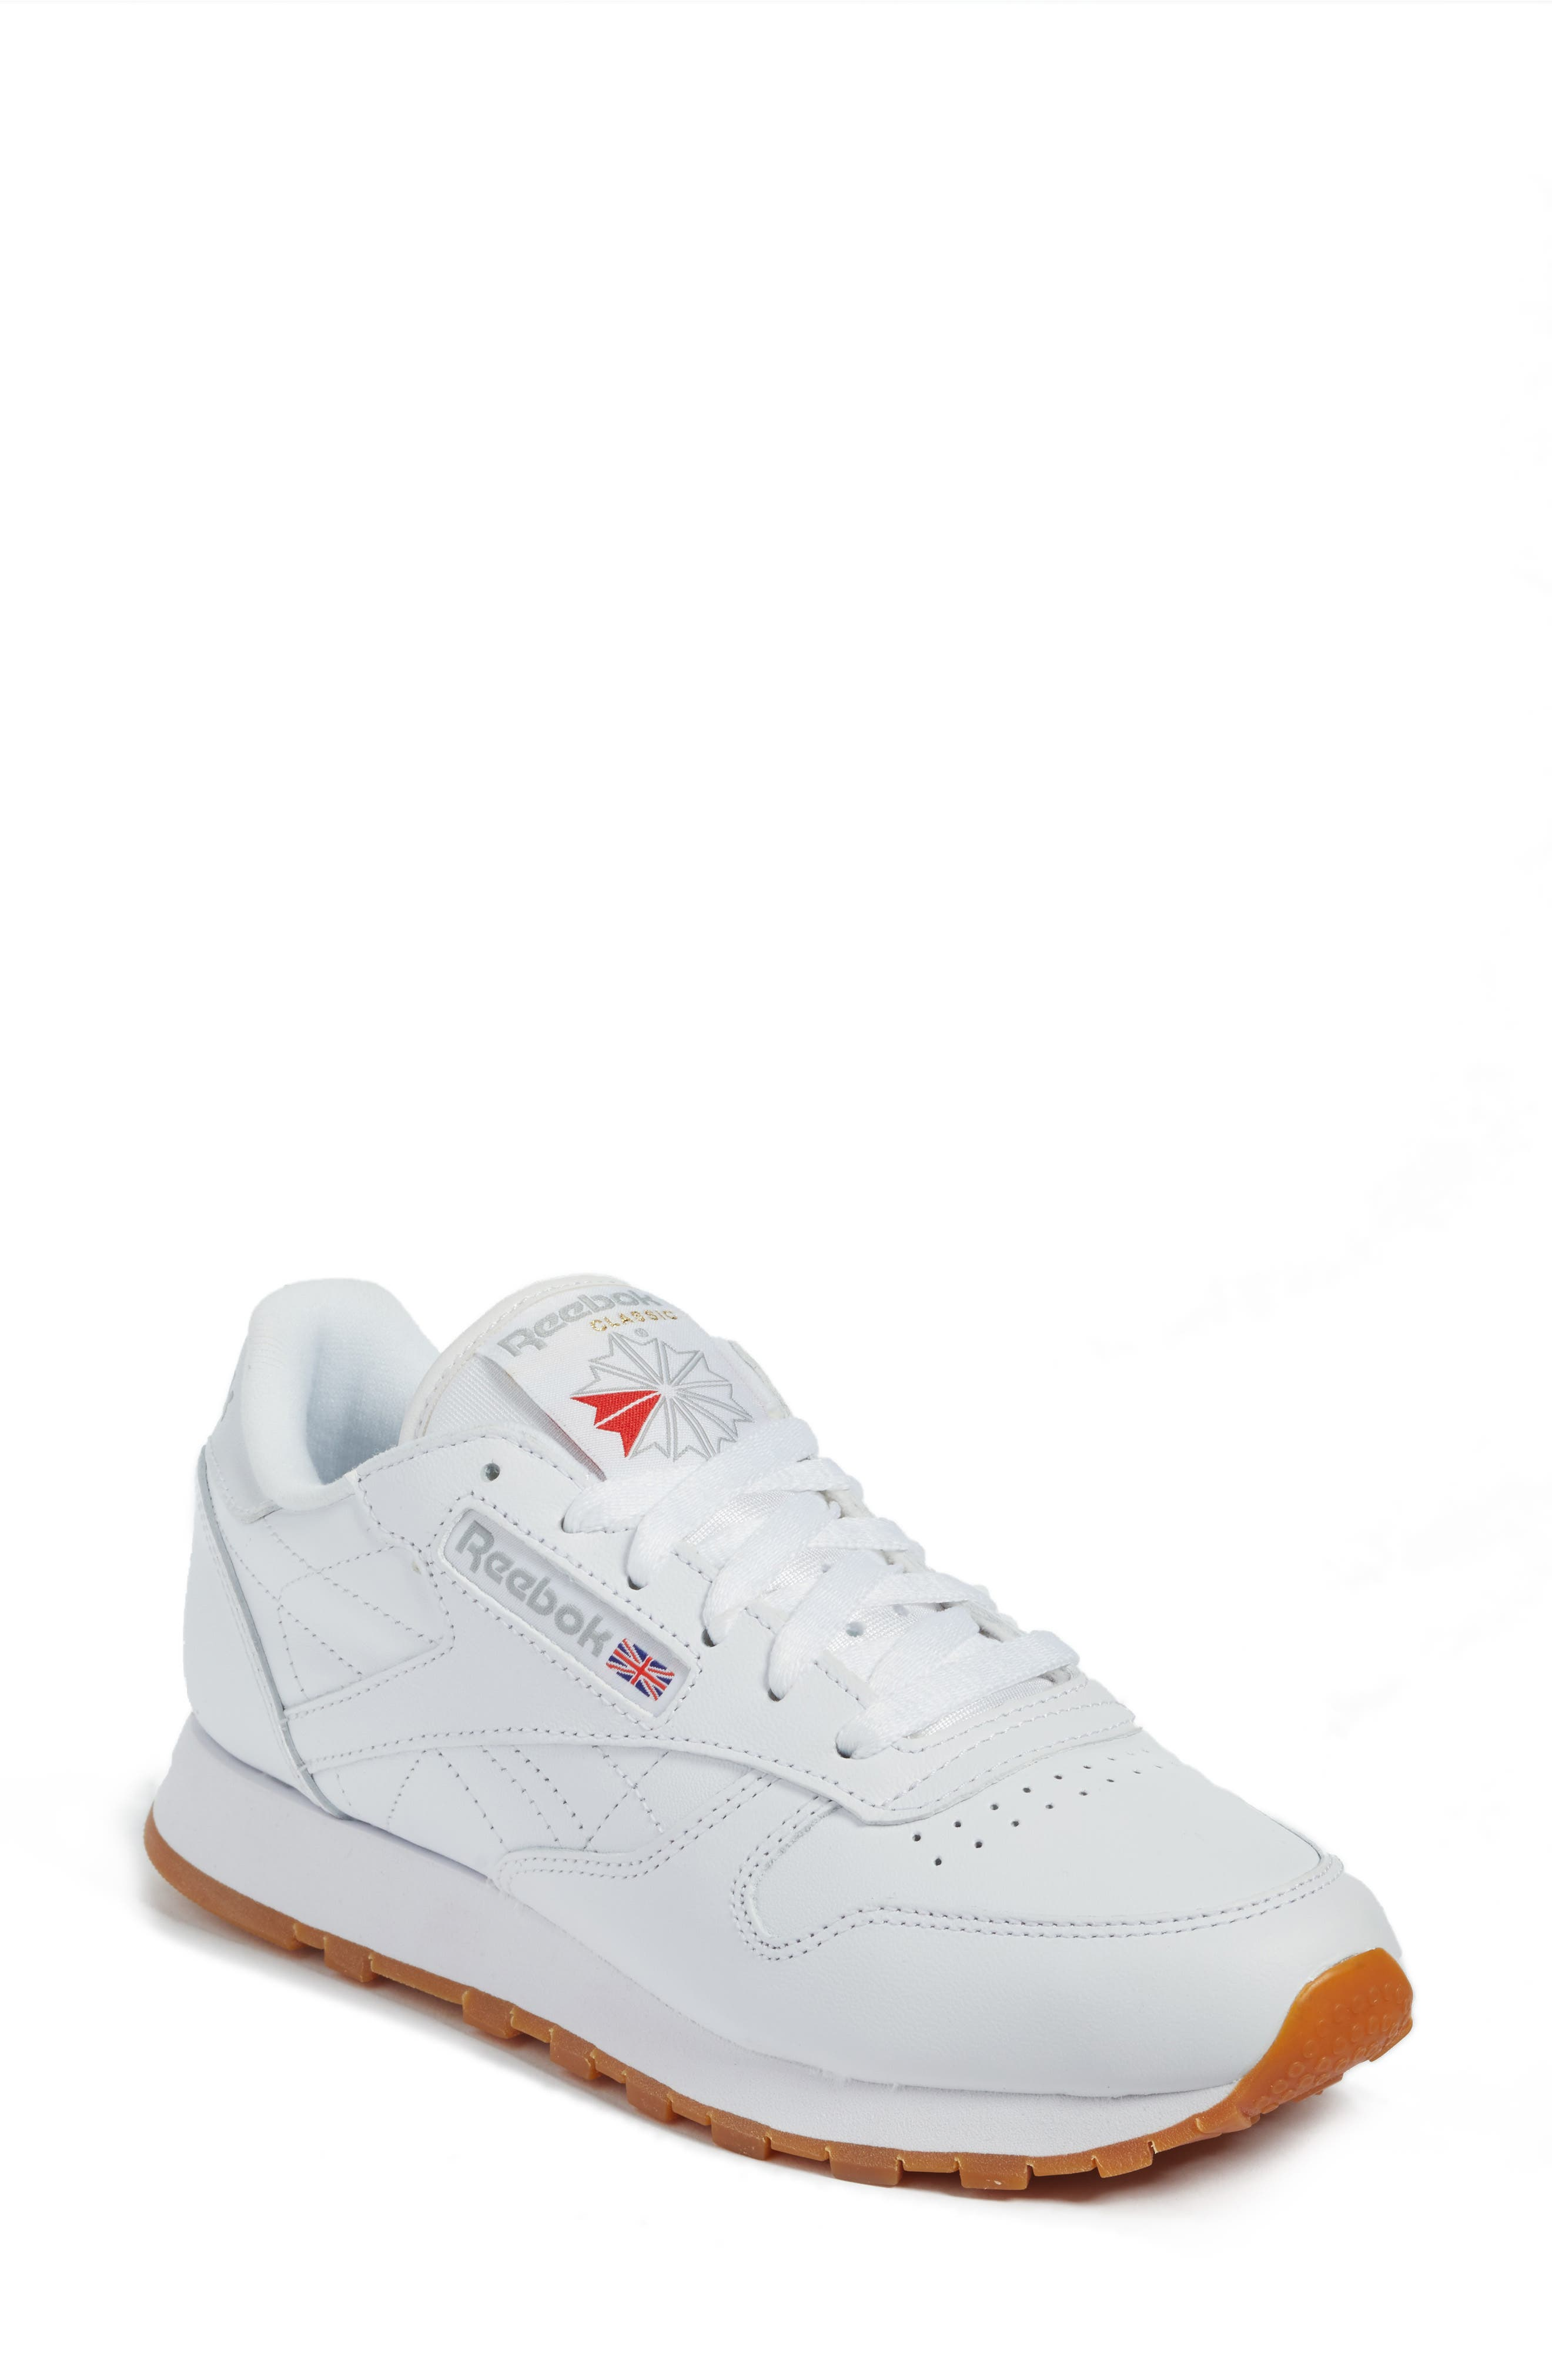 REEBOK,                             Classic Leather Sneaker,                             Main thumbnail 1, color,                             US-WHITE/ GUM